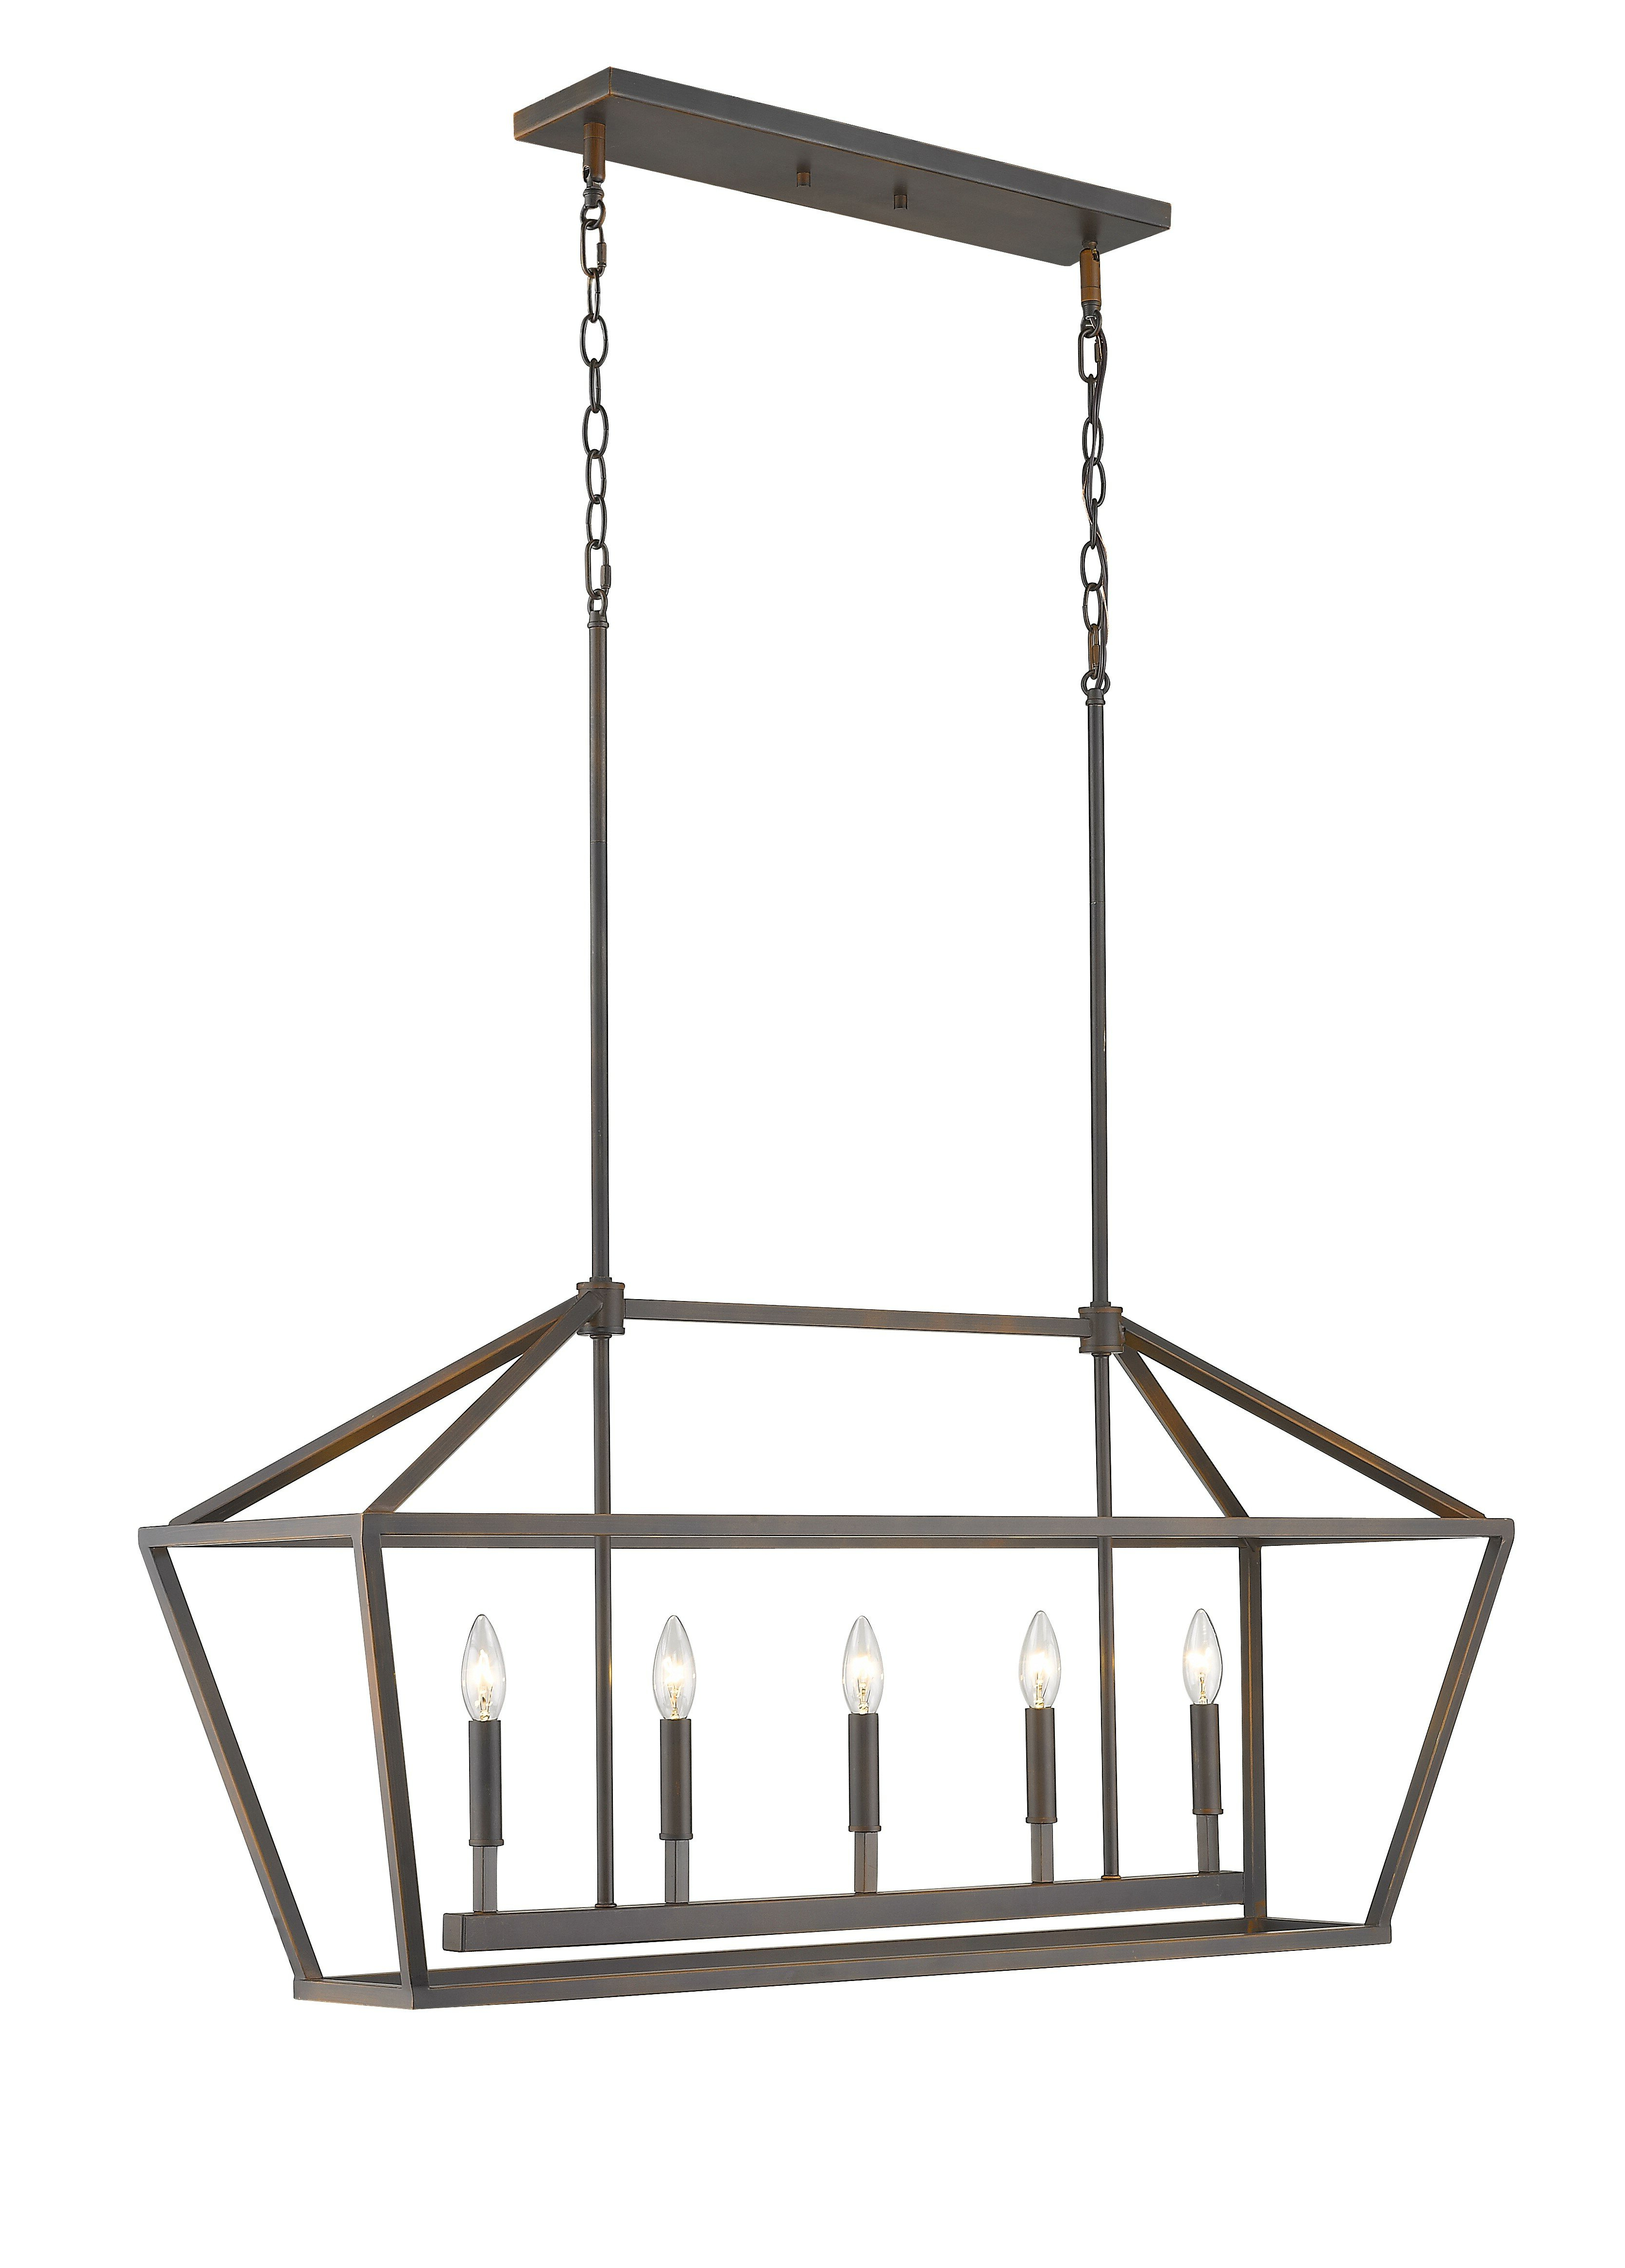 2020 Odie 8 Light Kitchen Island Square / Rectangle Pendants With Freemont 5 Light Kitchen Island Linear Chandelier (View 2 of 25)